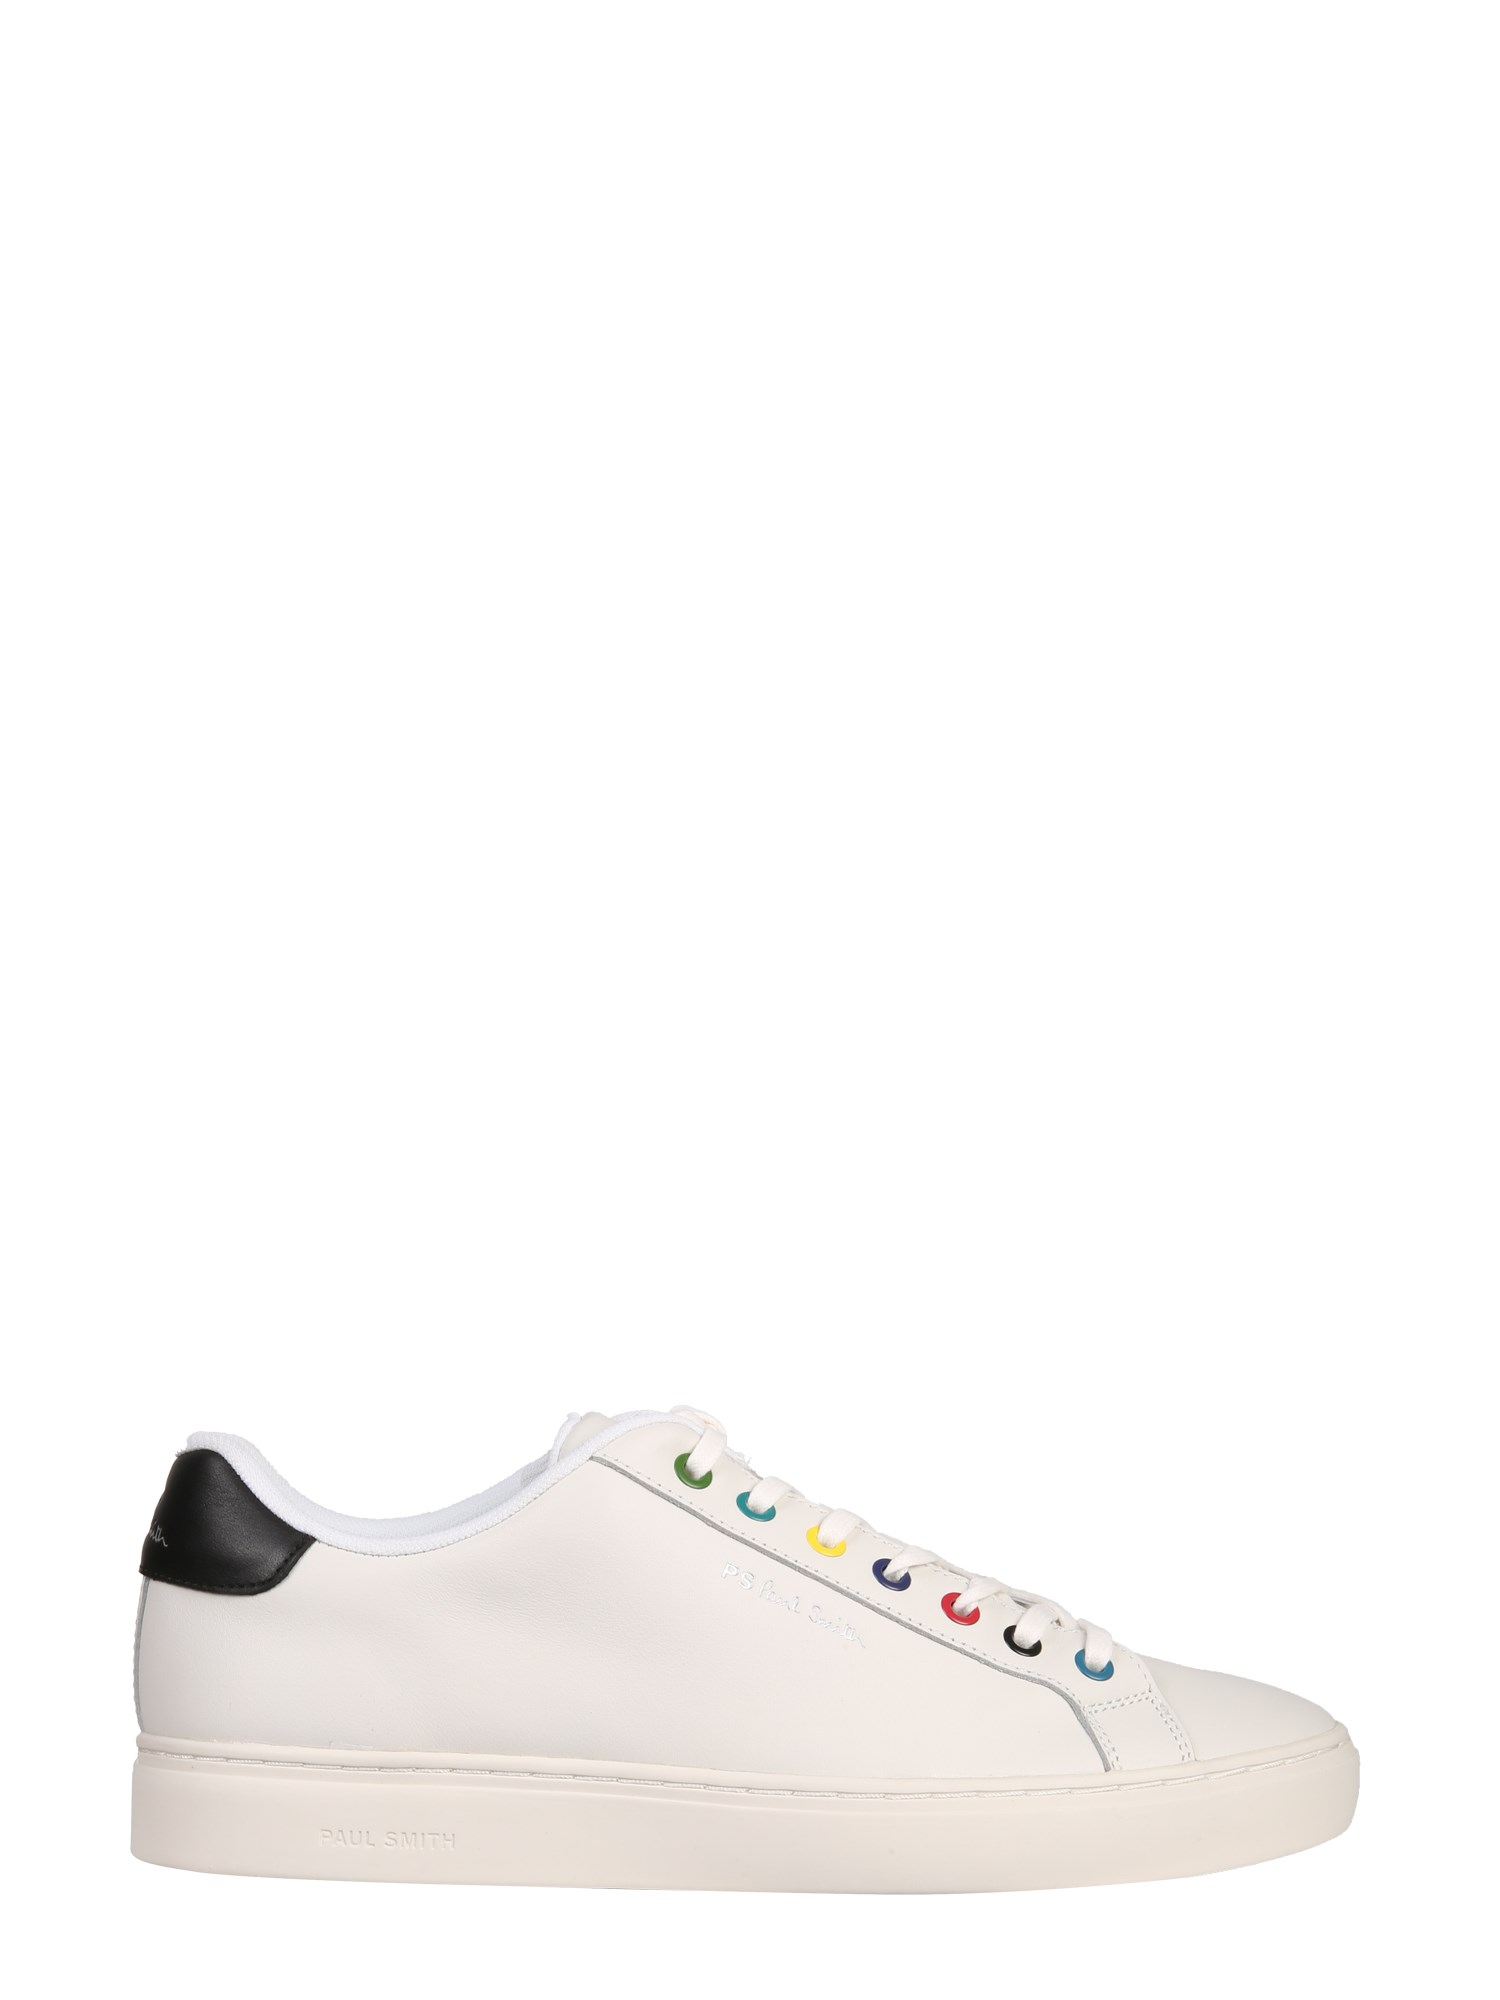 Ps by paul smith leather sneakers - ps by paul smith - Modalova